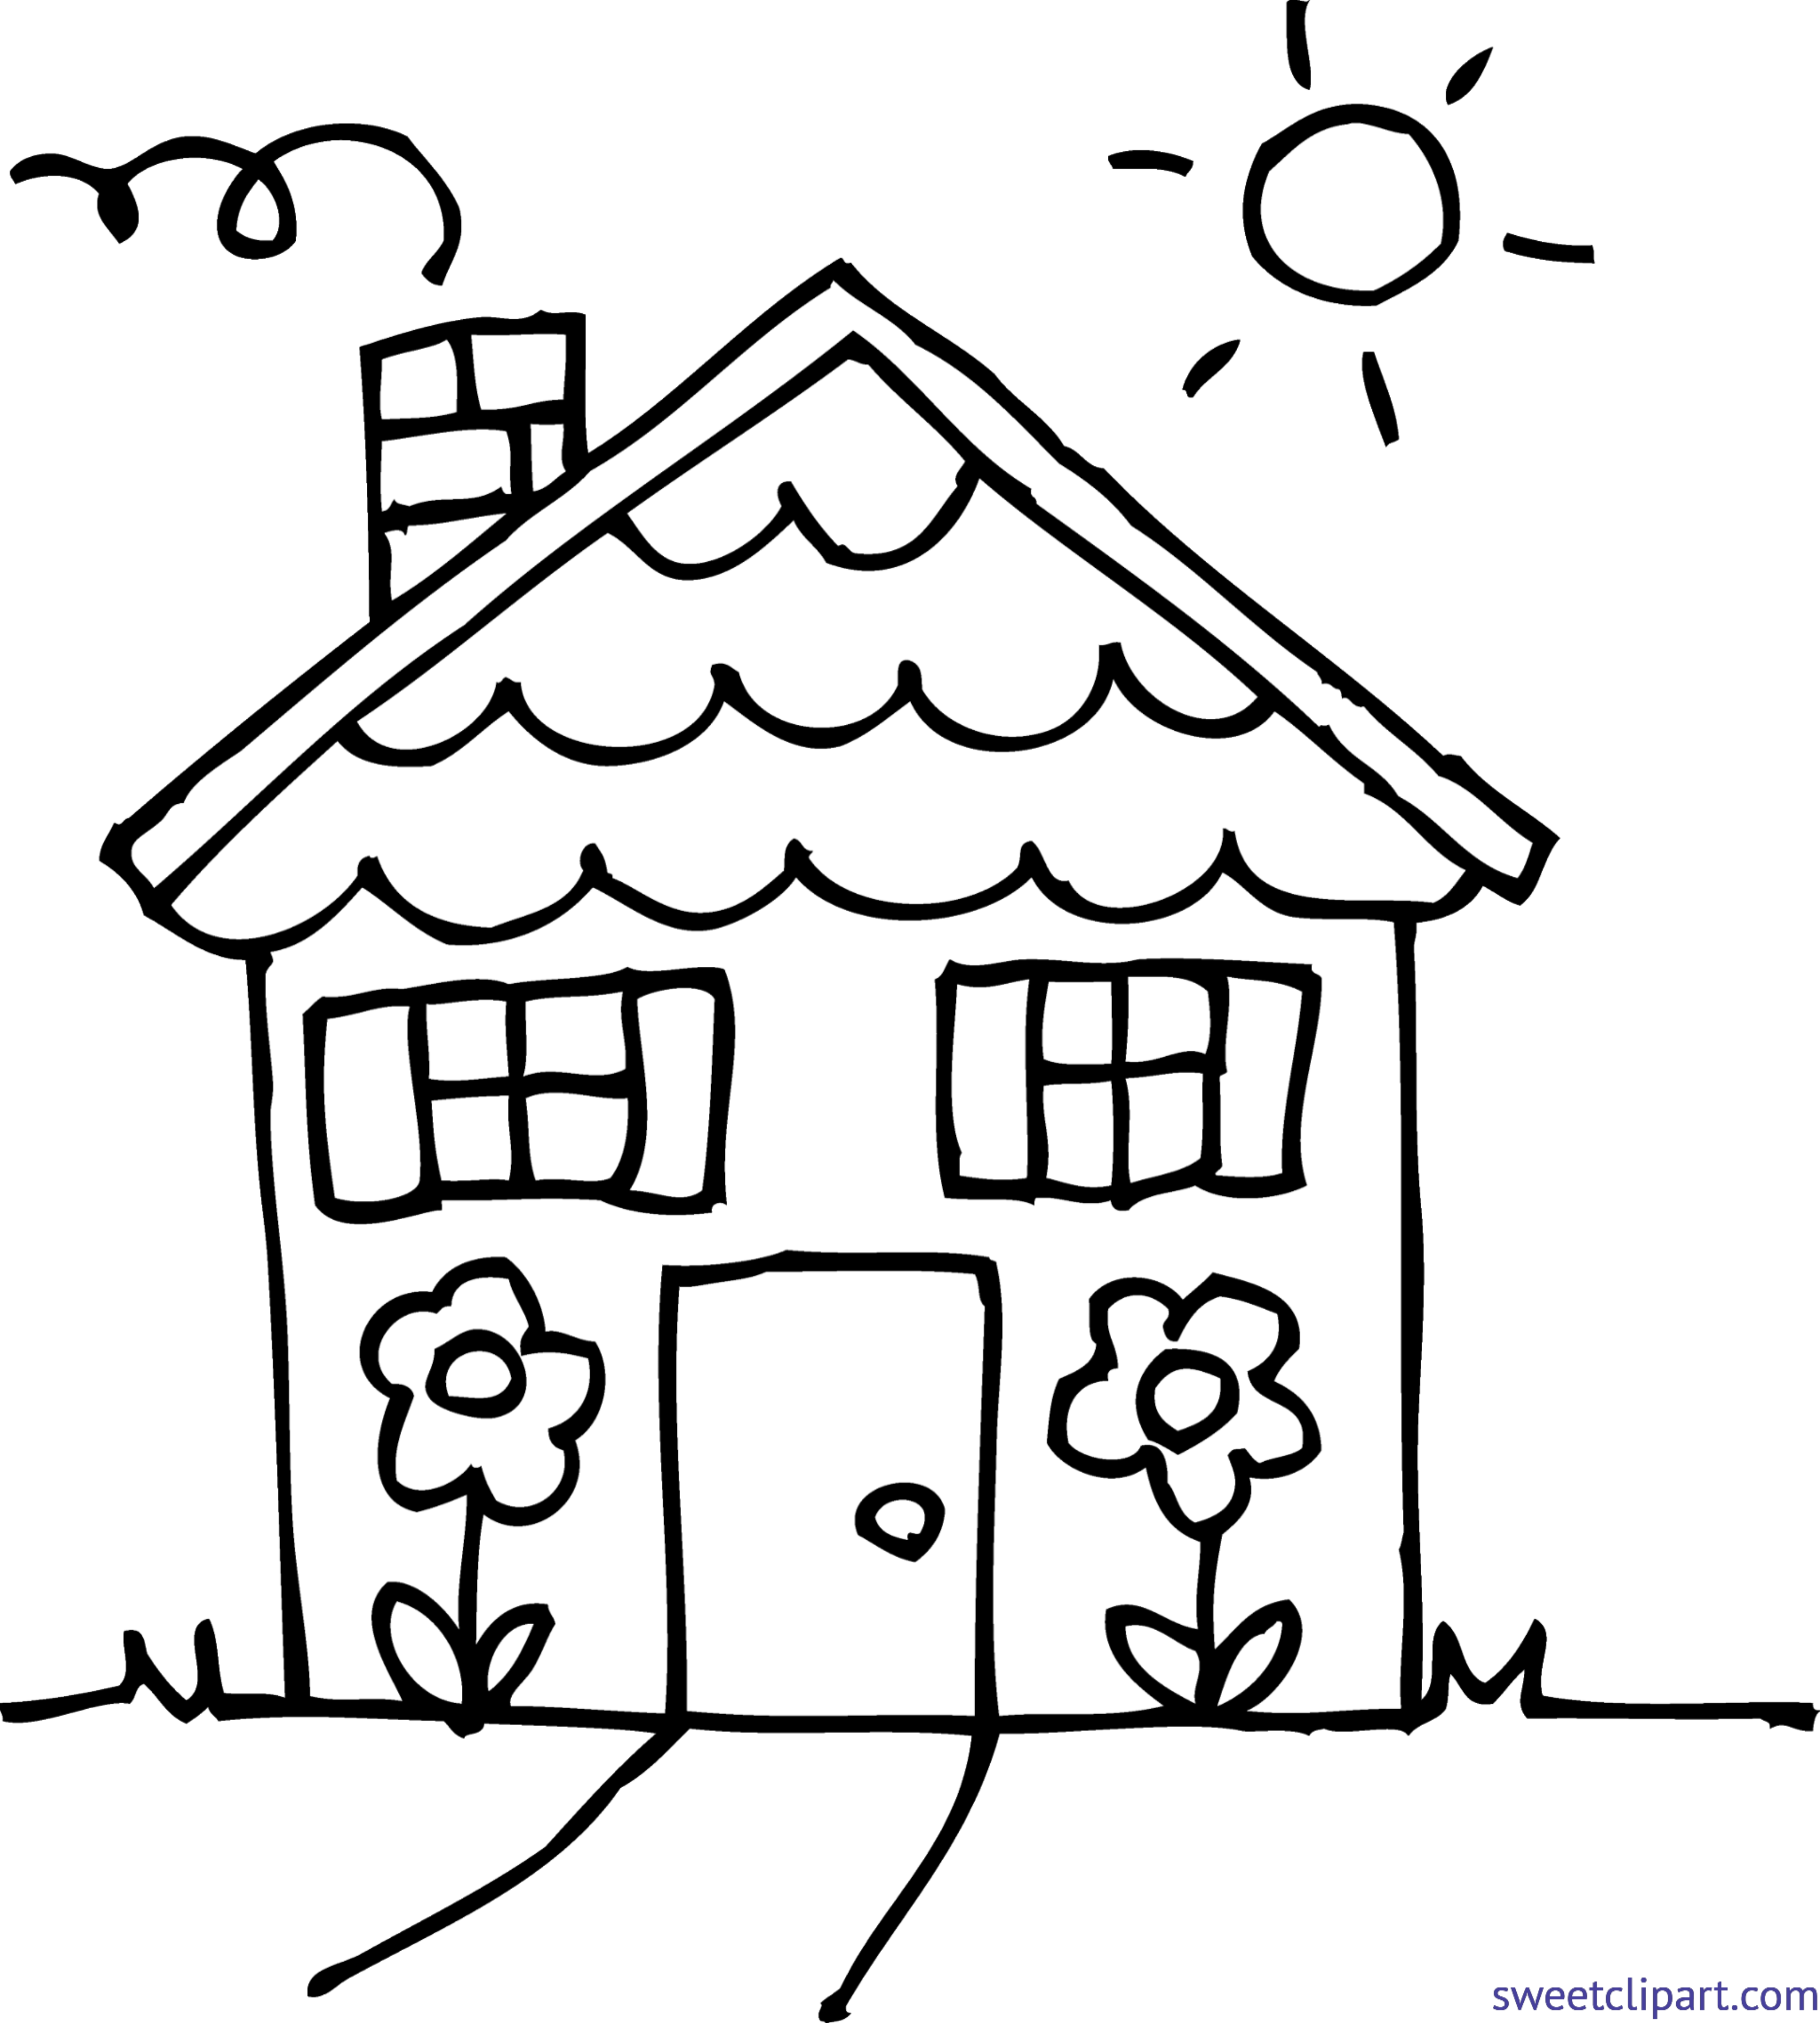 cute house 3 coloring page clip art sweet clip art rh m sweetclipart com black and white house clipart images black and white house clipart vector